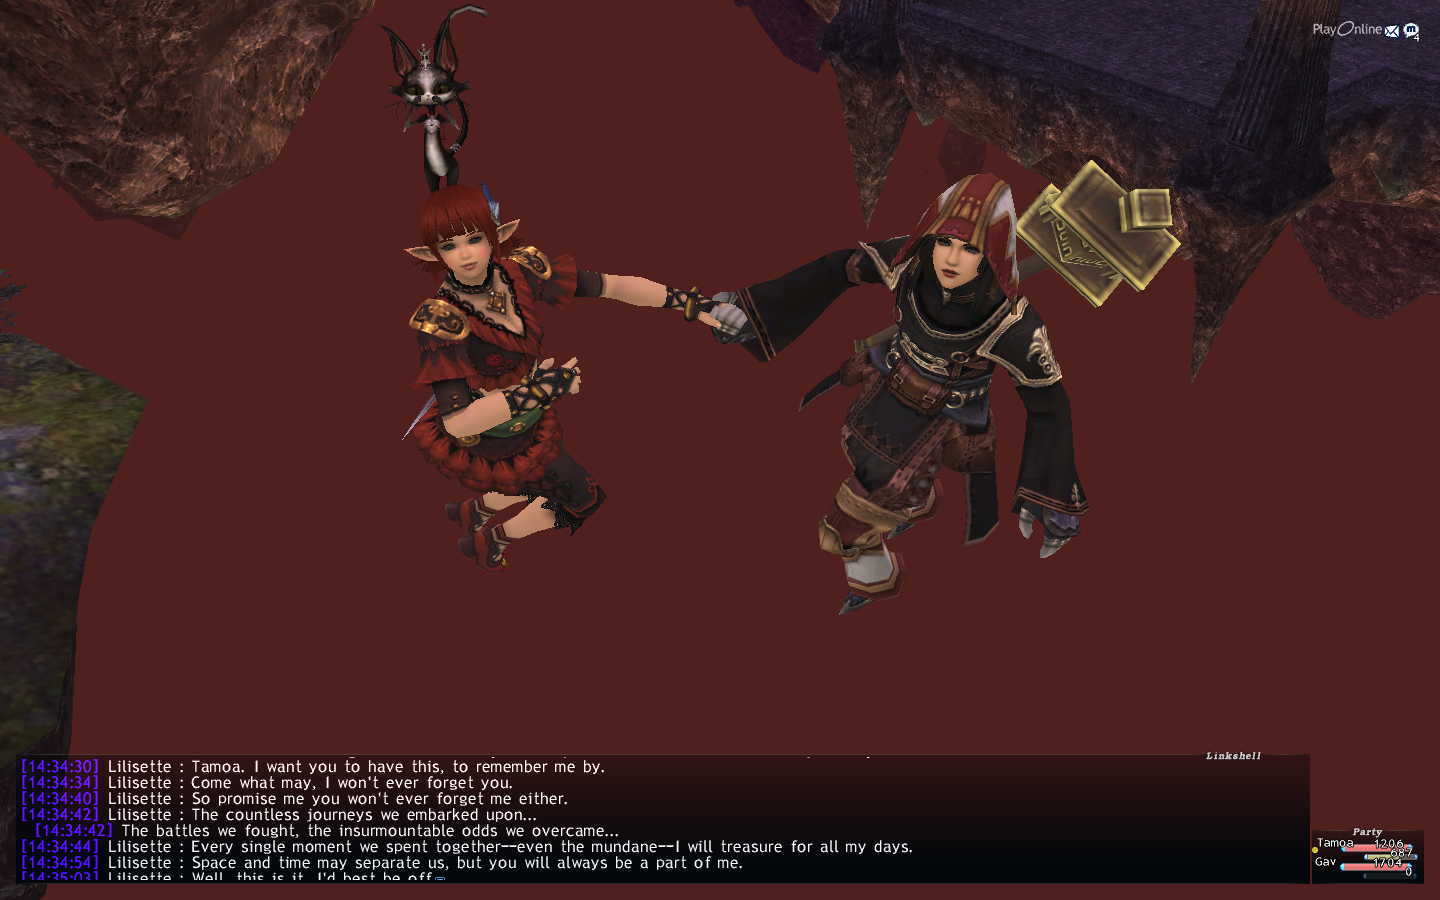 mairja ffxi first tanked fight empires jorm with kurayami died beat that gadr where down definitely keep minority sprit nostalgia always favoritebest lookingfunniest screenshots incoming nidhogg time your khim looong think this